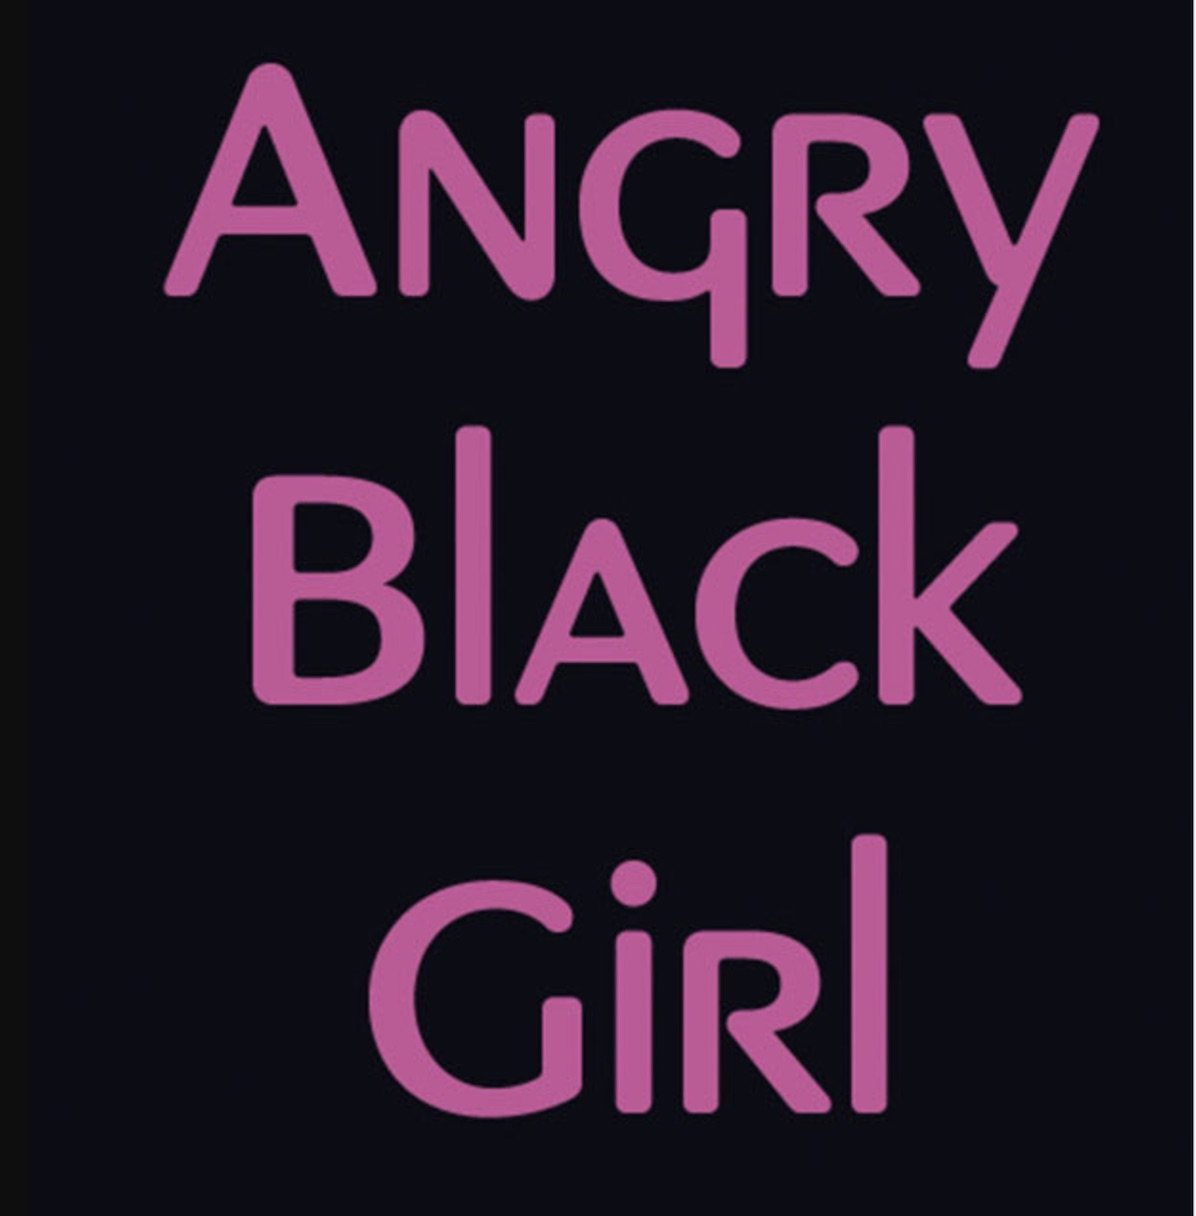 Elexus Jionde's 'Angry Black Girl' Holds a Magnifying Glass Up to American History